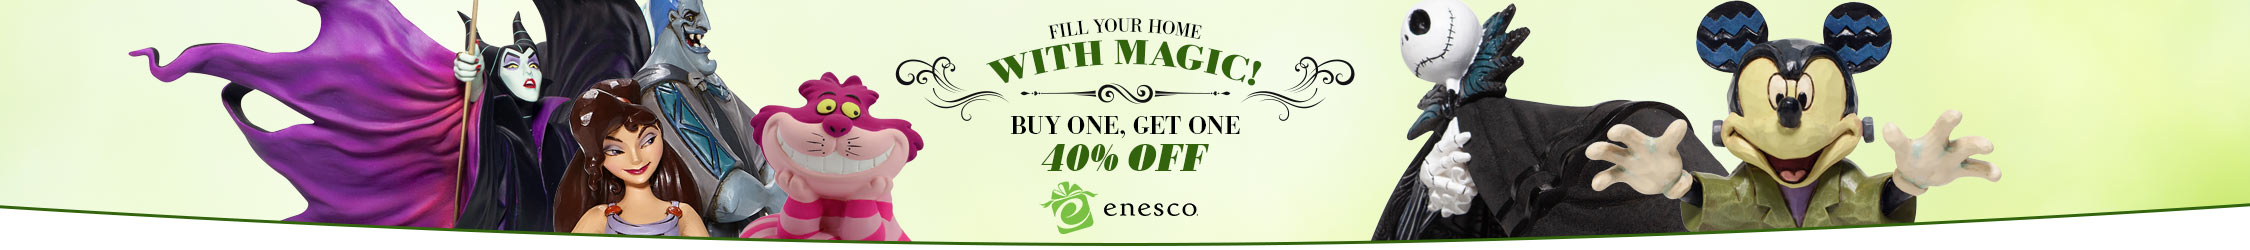 Enesco Buy One Get One 40% Off